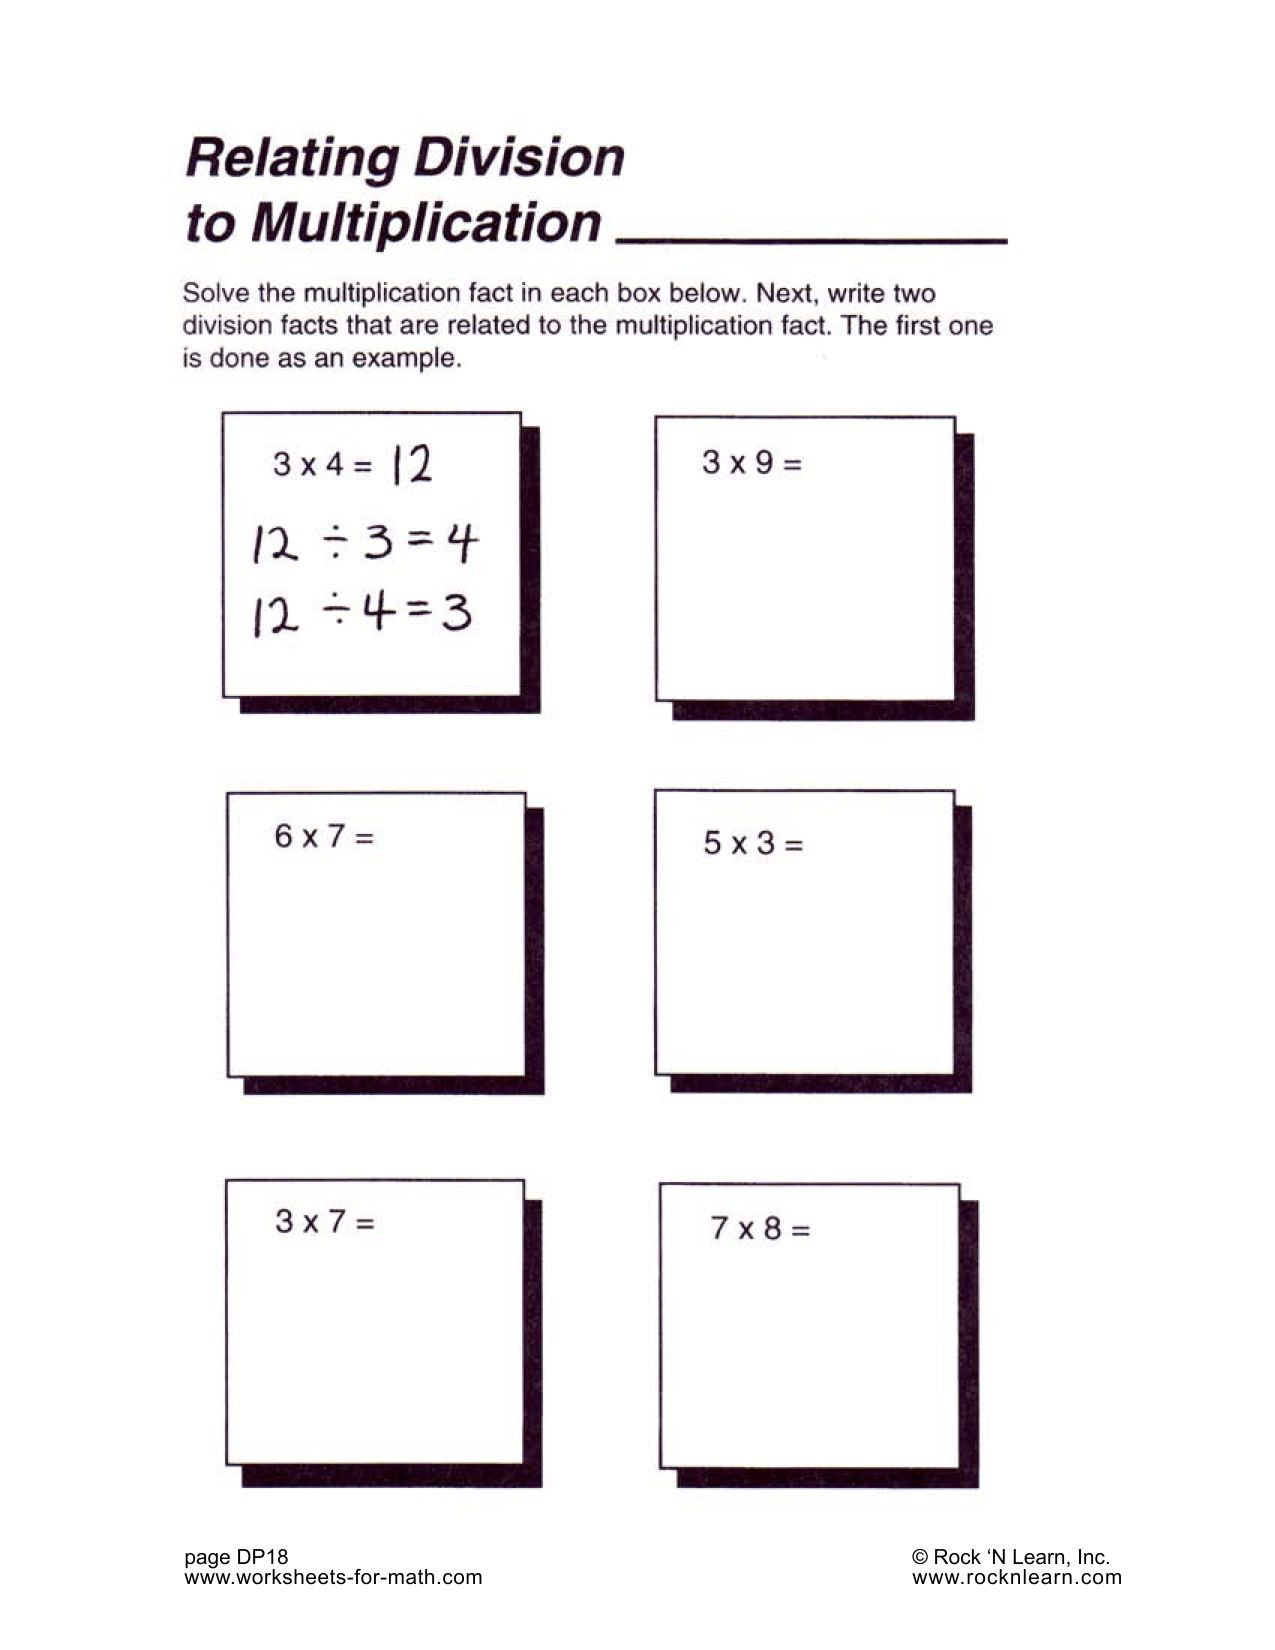 Solve the multiplication fact in each box Next write 2